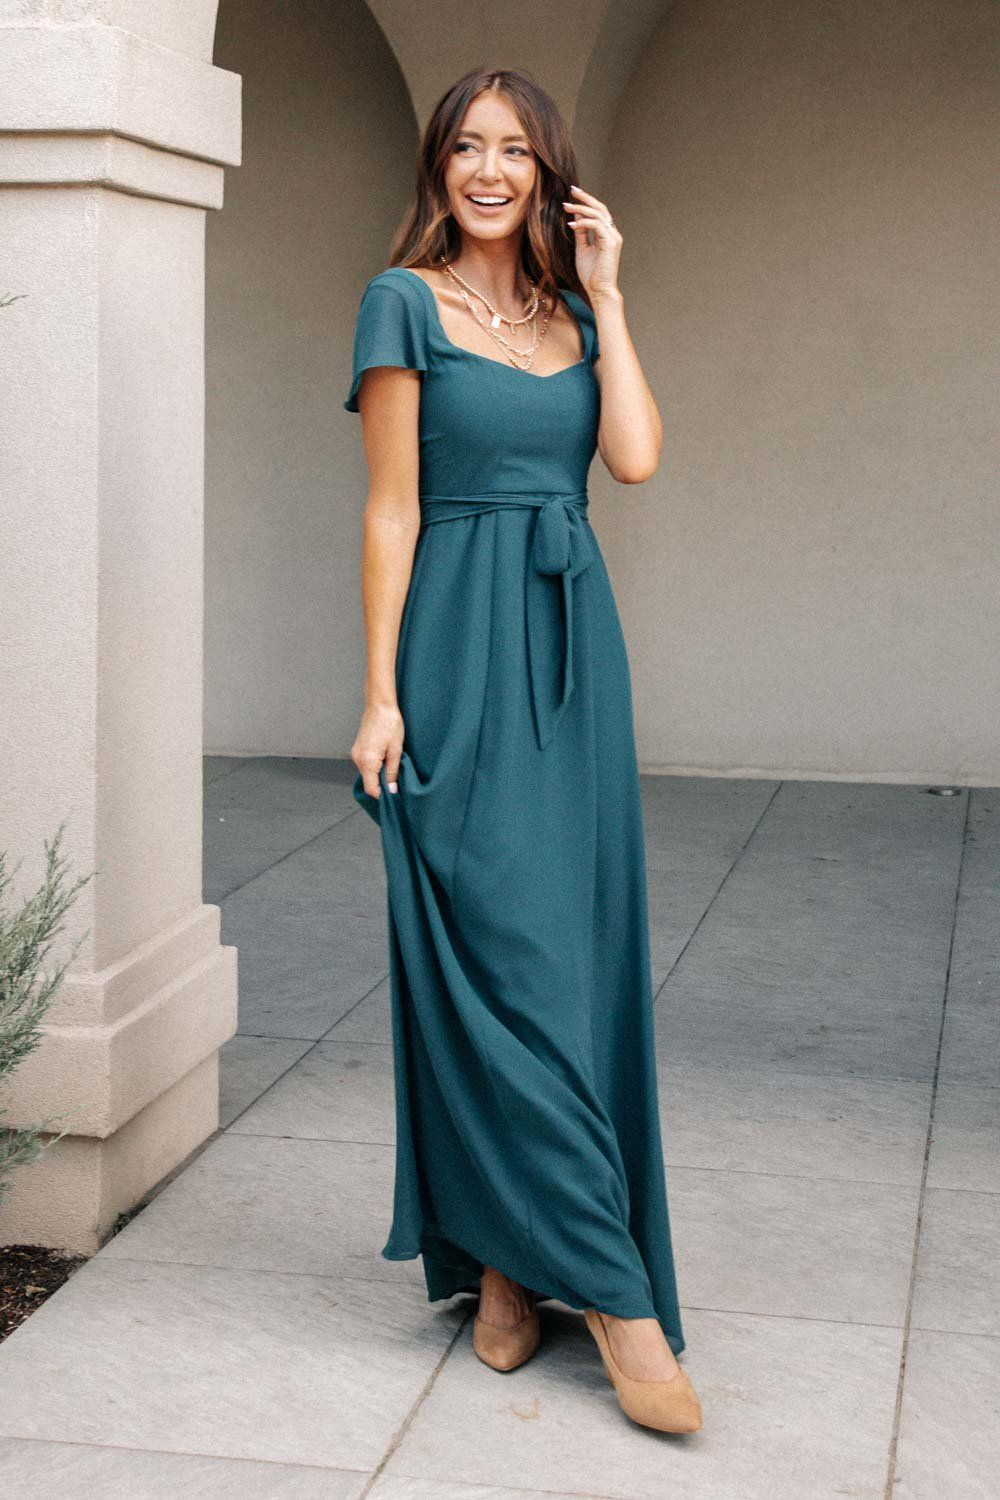 Florence Sweetheart Maxi Dress In Teal Final Sale In 2021 Maxi Dress Dresses Maxi [ 1500 x 1000 Pixel ]